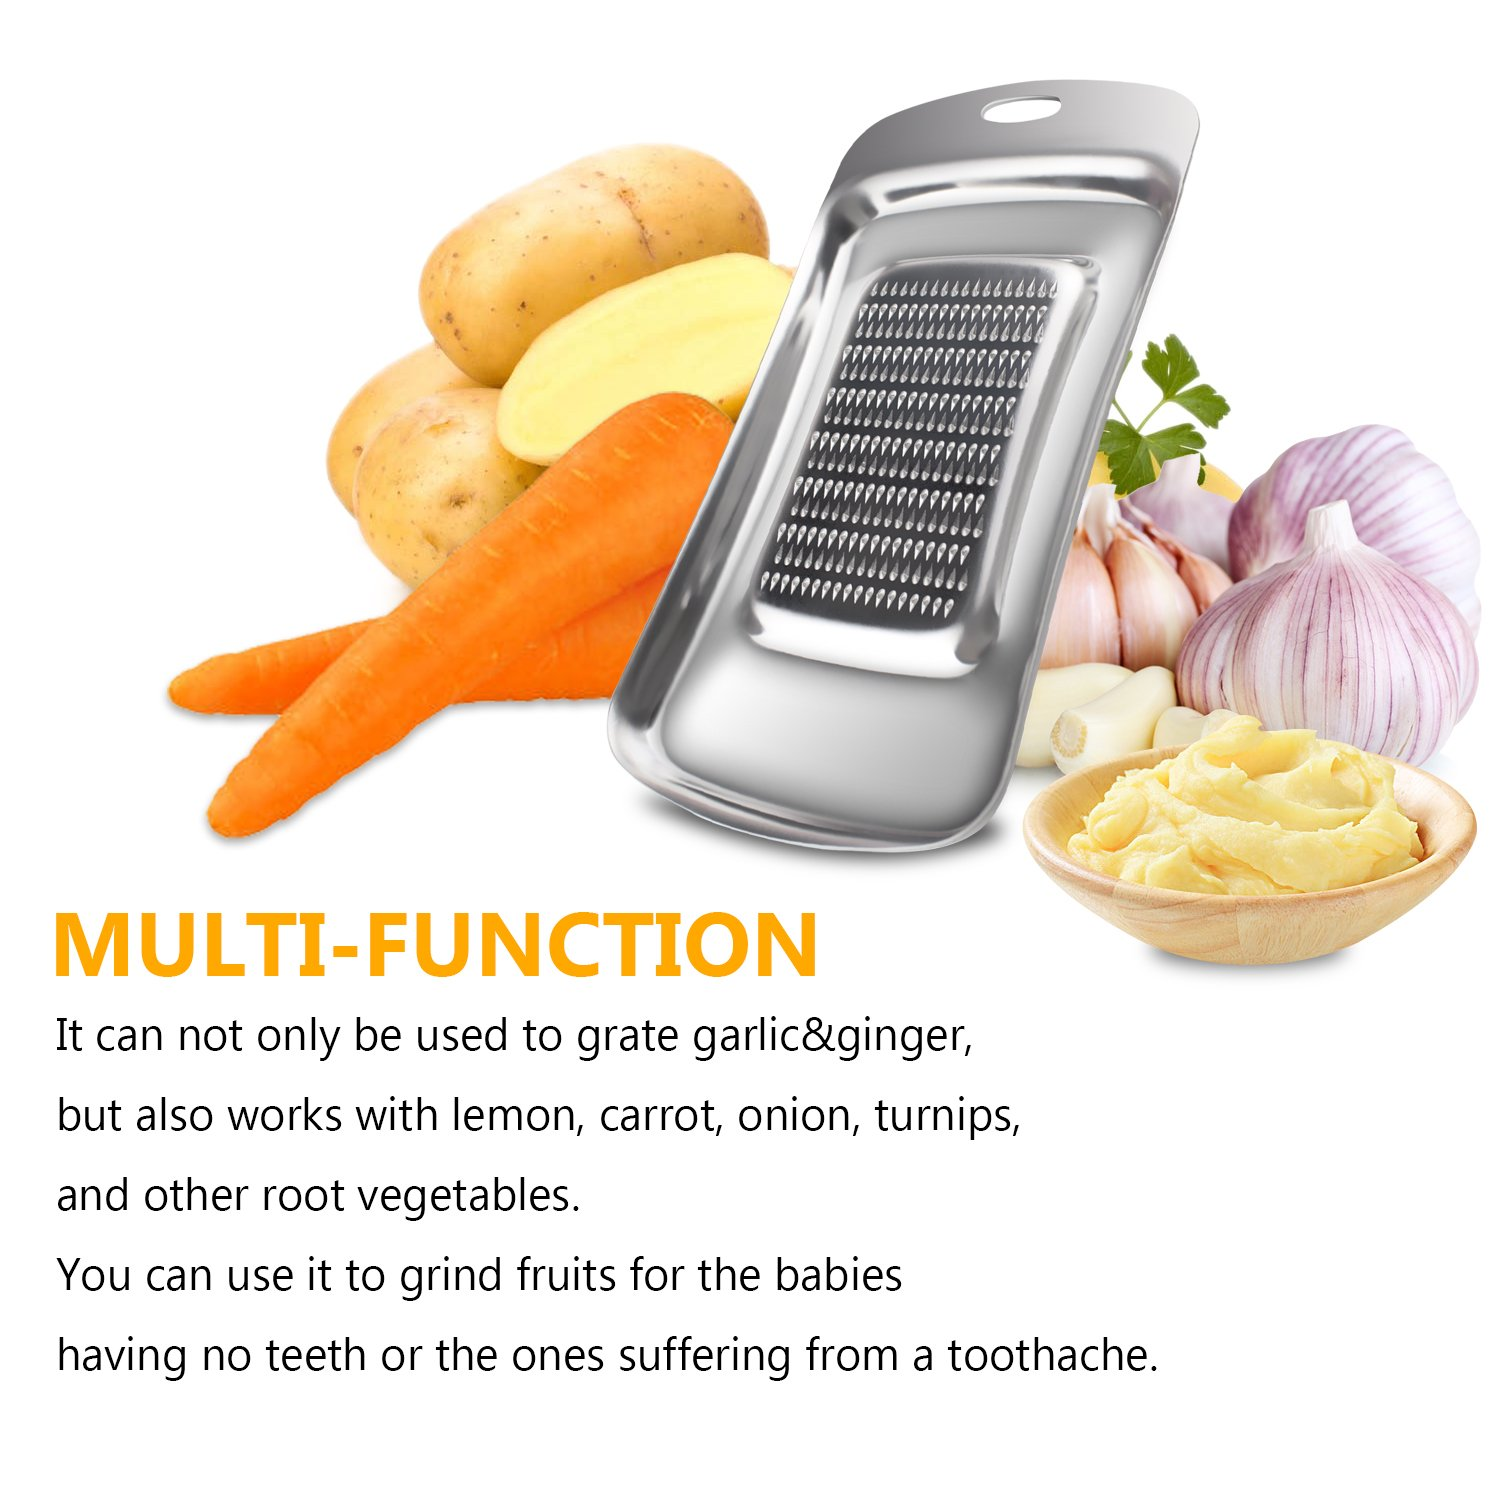 Sharp Blade Zester with Safety Cover for Lemon,Ginger,Cheese,Garlic,Red Handle Besiva Stainless Steel Grater